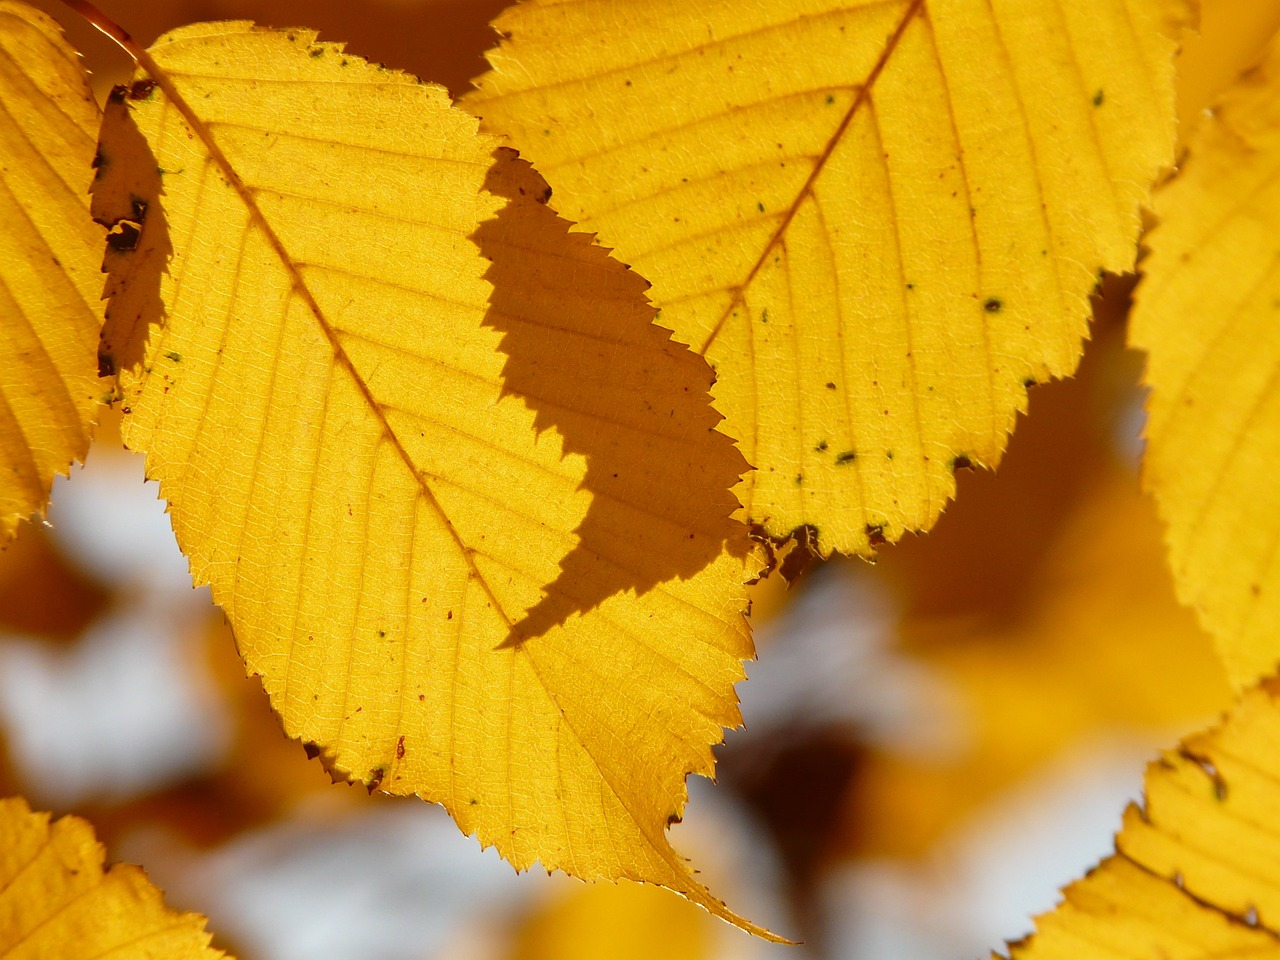 leaf,leaves,autumn,hornbeam,carpinus betulus,white beech,birch greenhouse,betulaceae,golden autumn,golden october,october,forest,golden,bright,sun,back light,colorful,color,free pictures, free photos, free images, royalty free, free illustrations, public domain